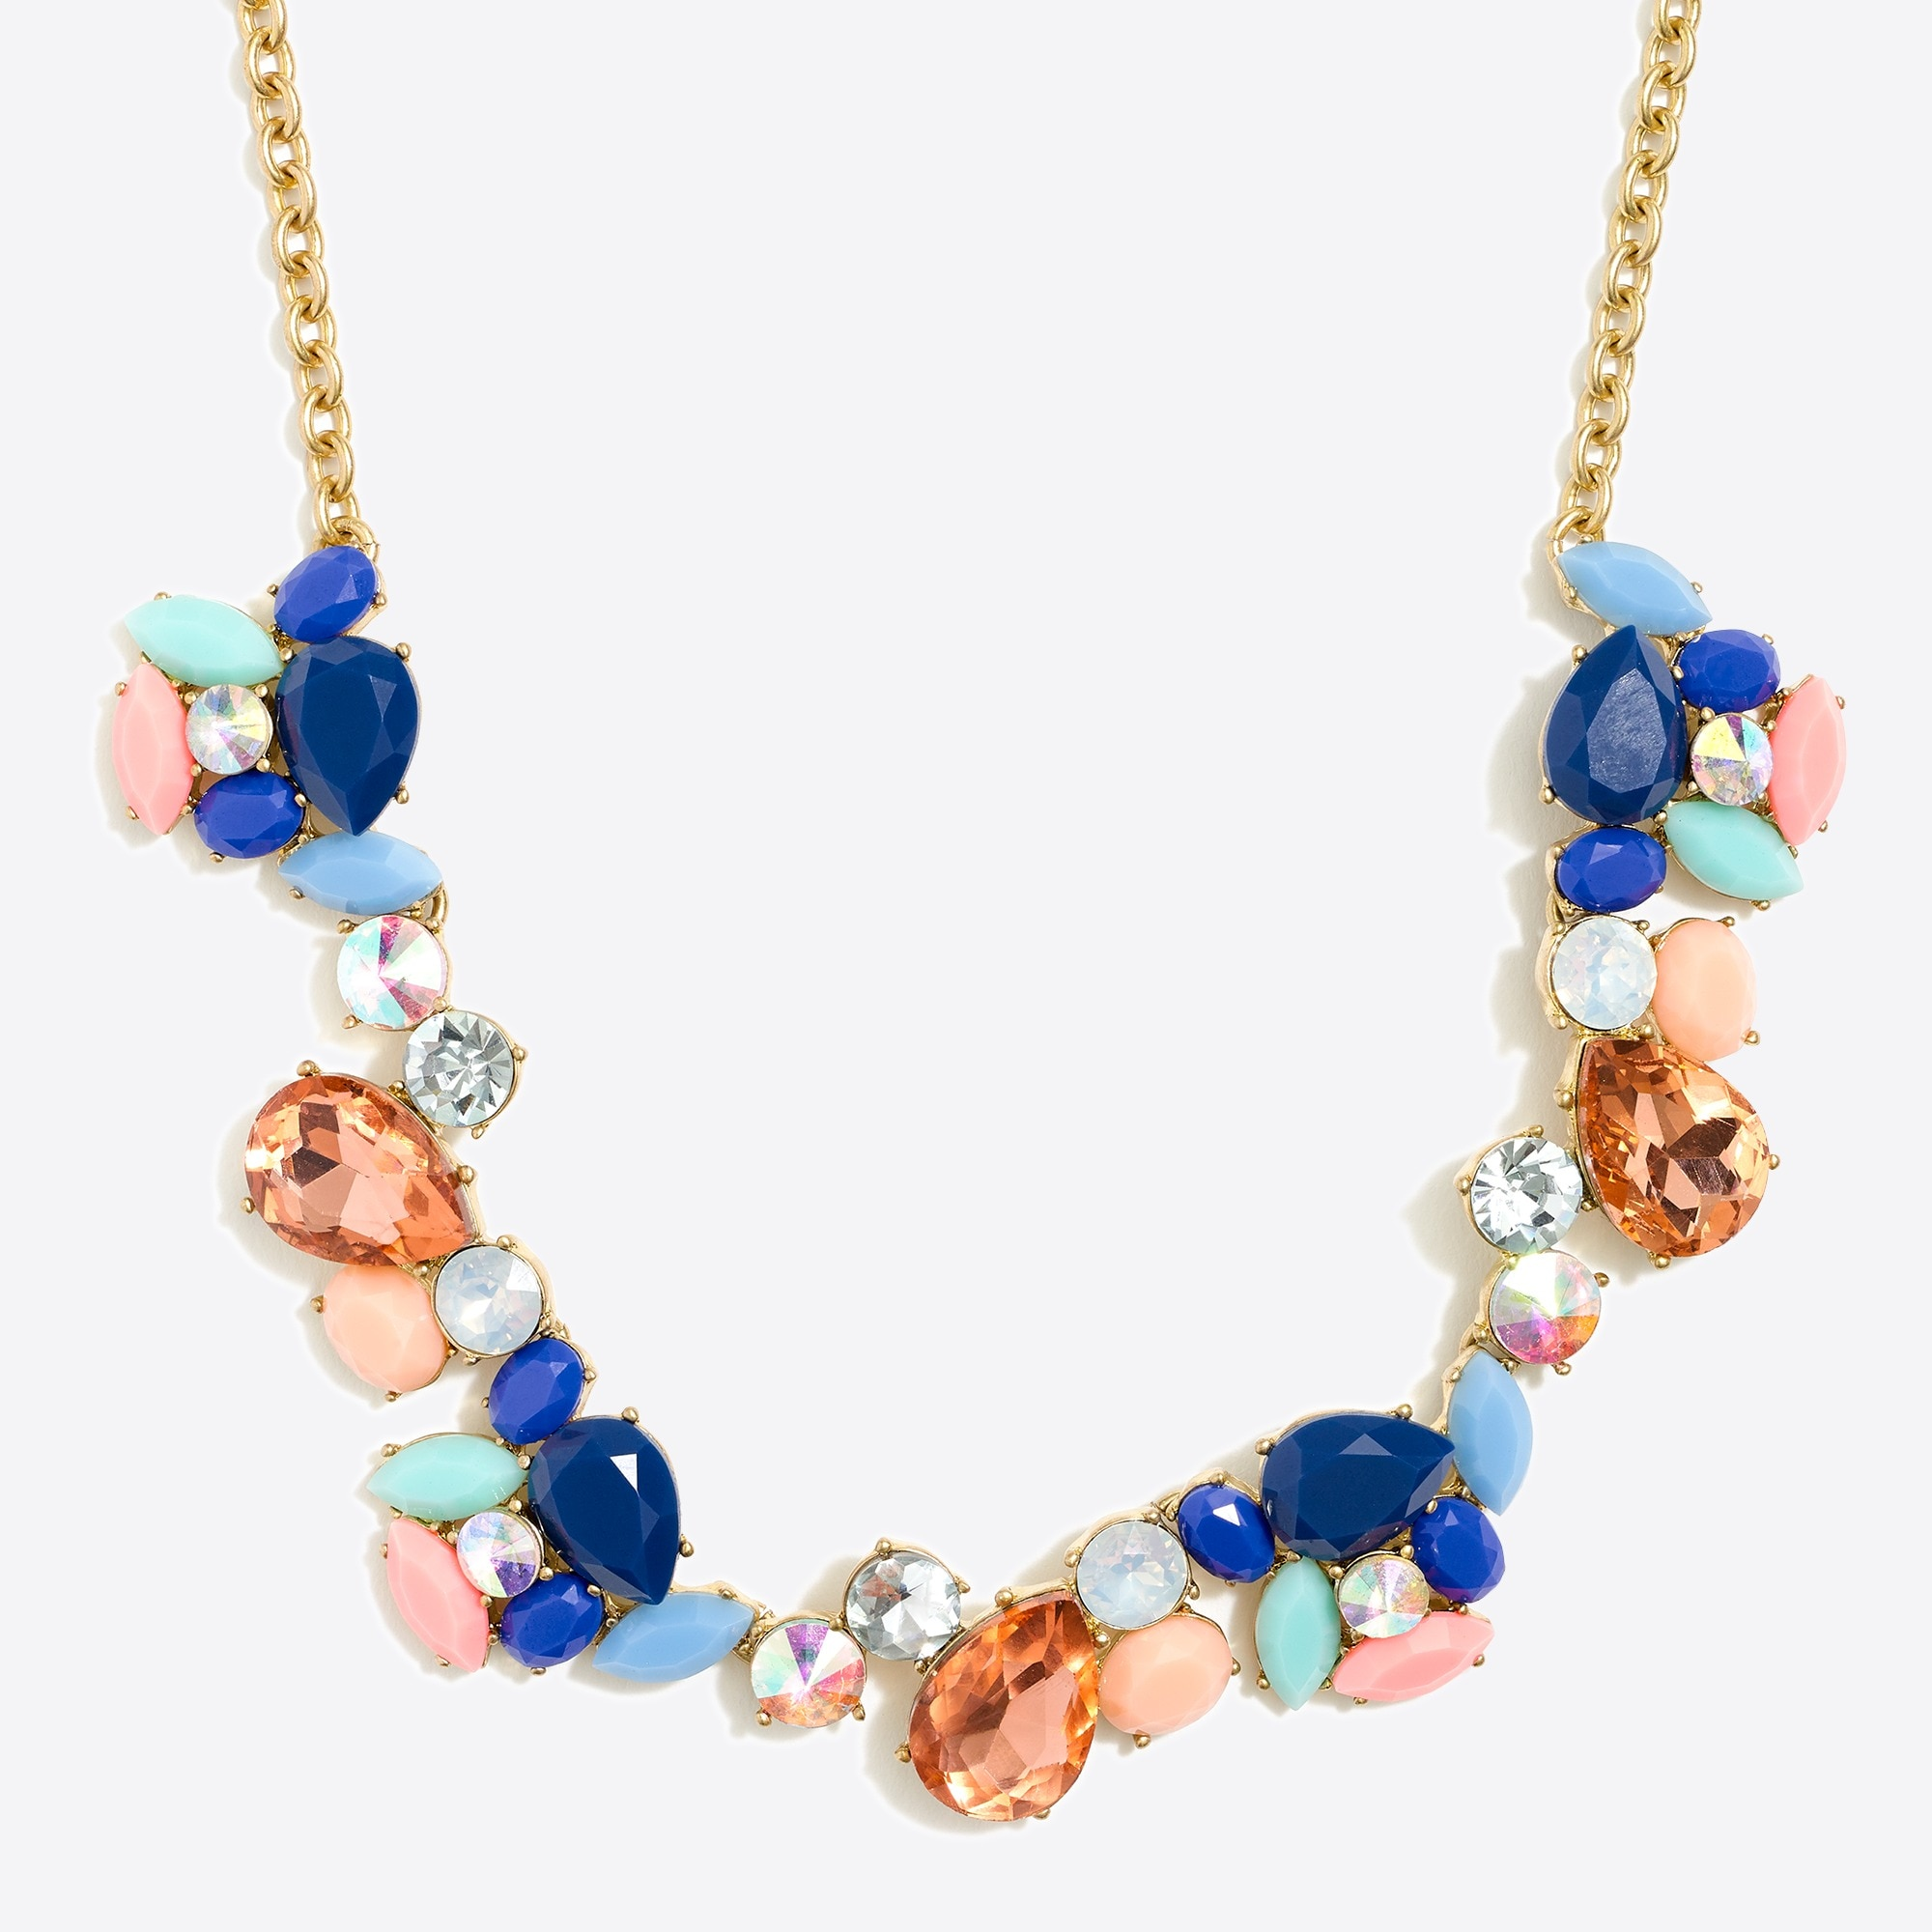 Crystal paint party necklace